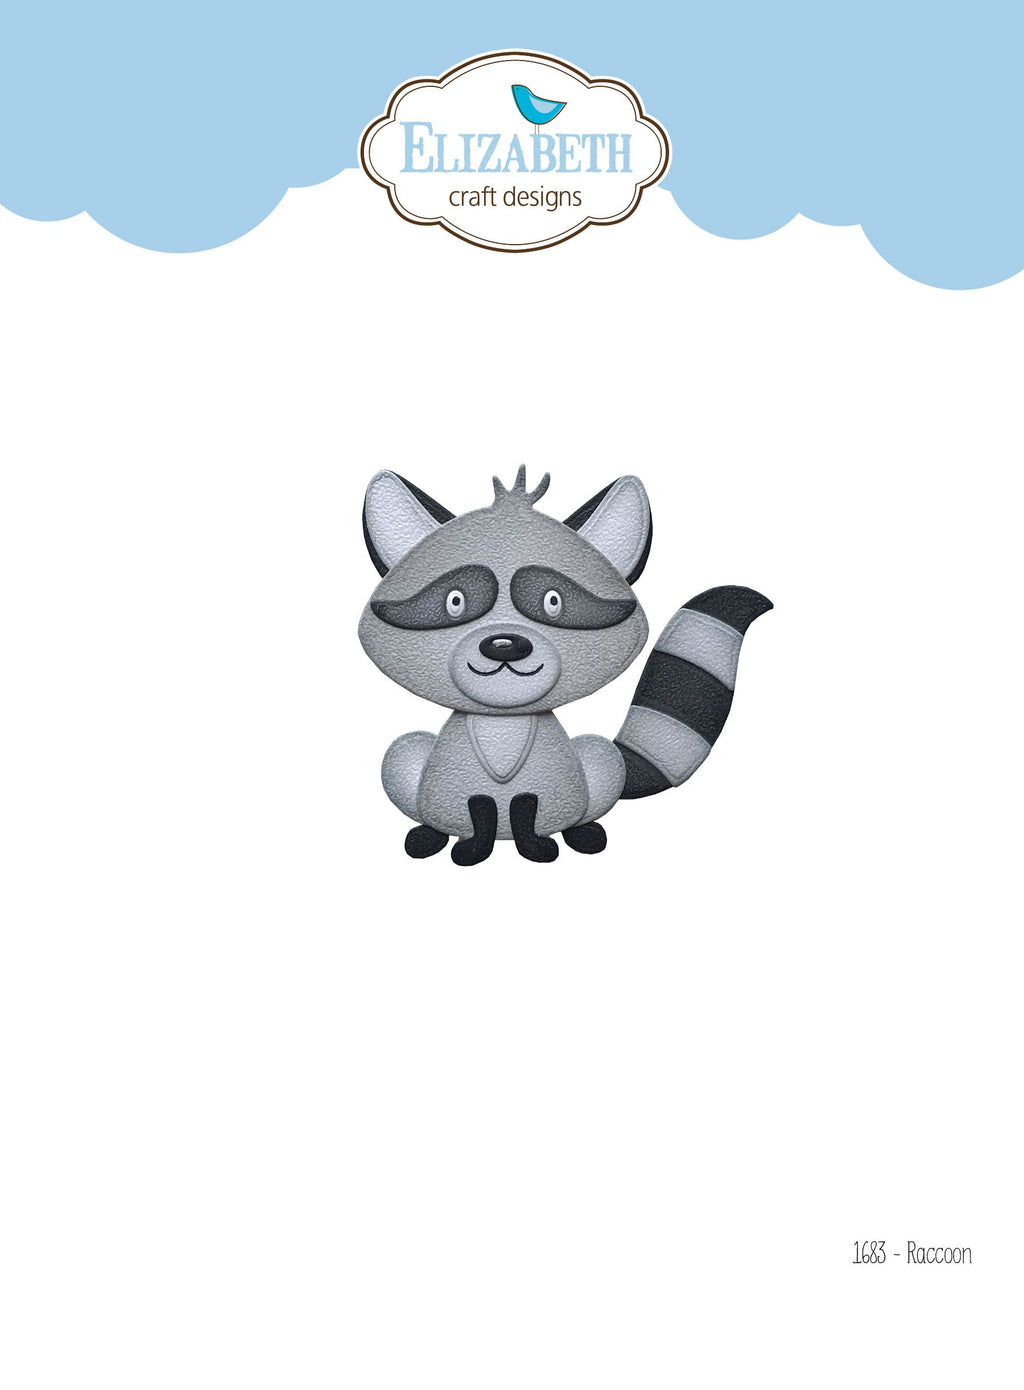 Elizabeth Craft Designs - Dies - Raccoon